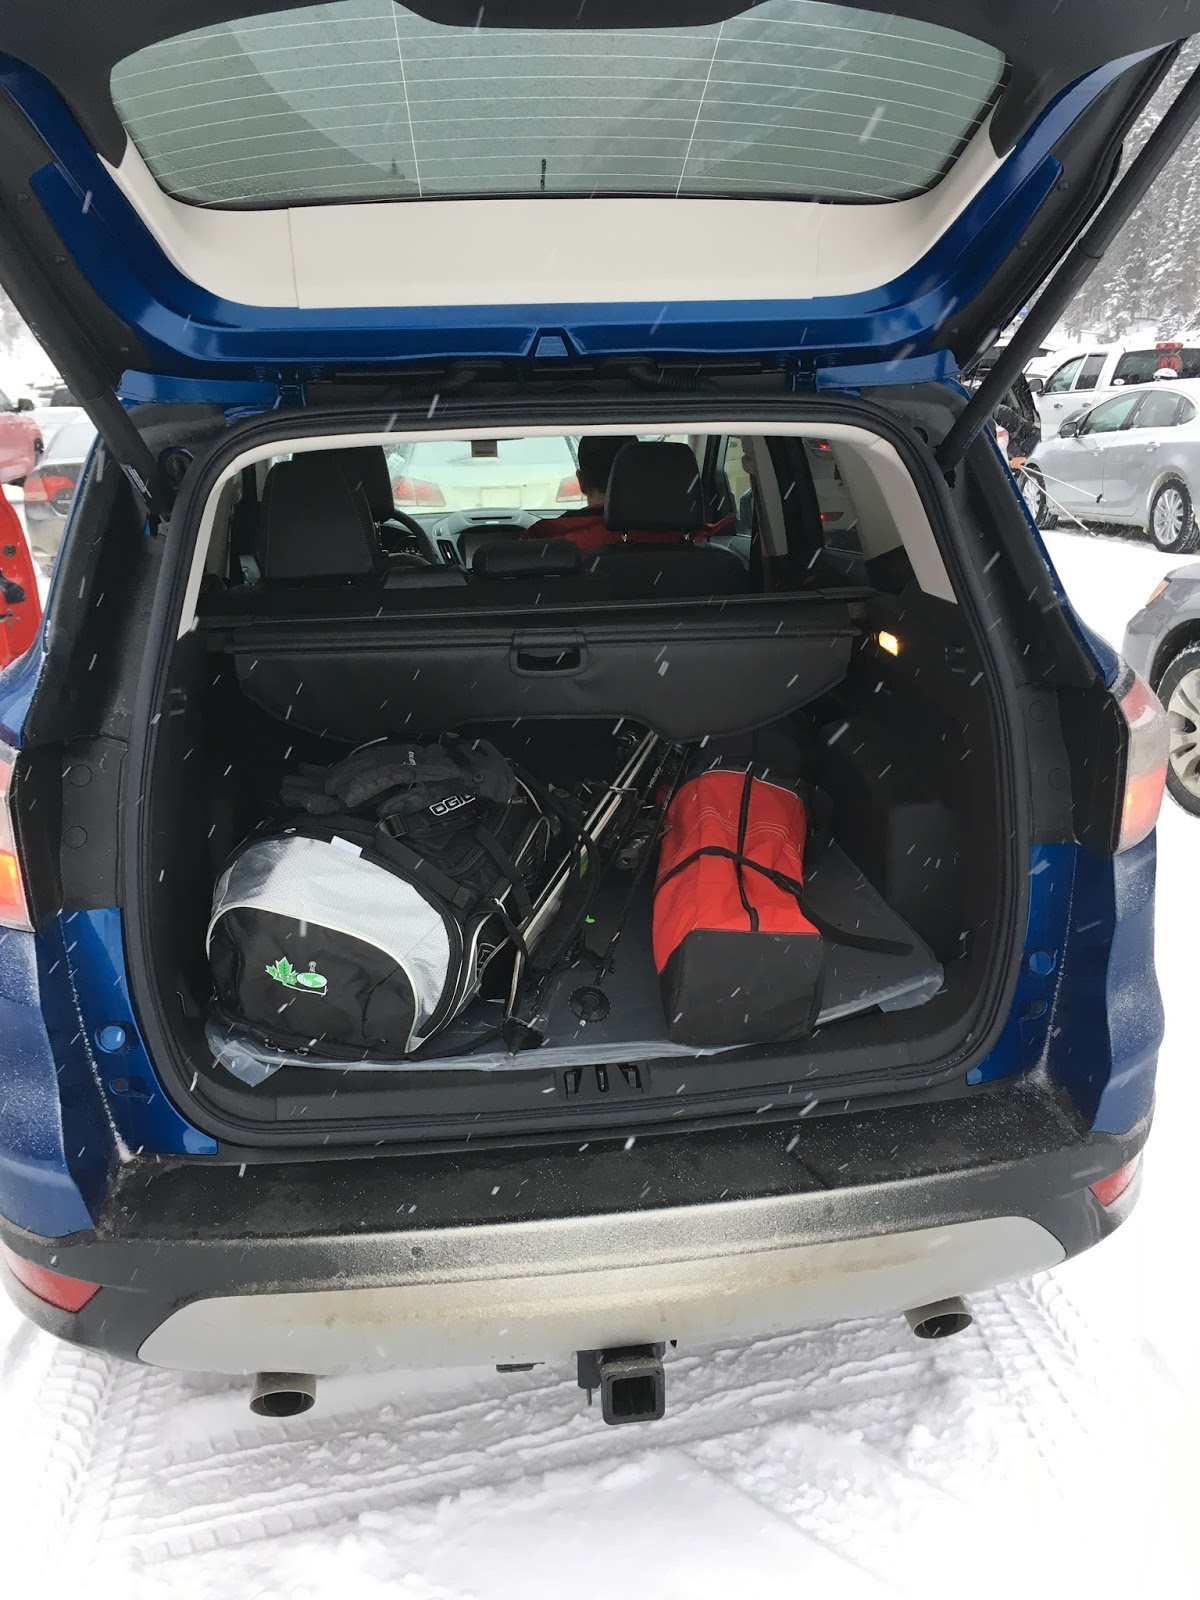 The 2 0l ford ecoboost engine as always was a strong performer in the escape and i found there to be plenty of giddy up and go for accelerating both from a